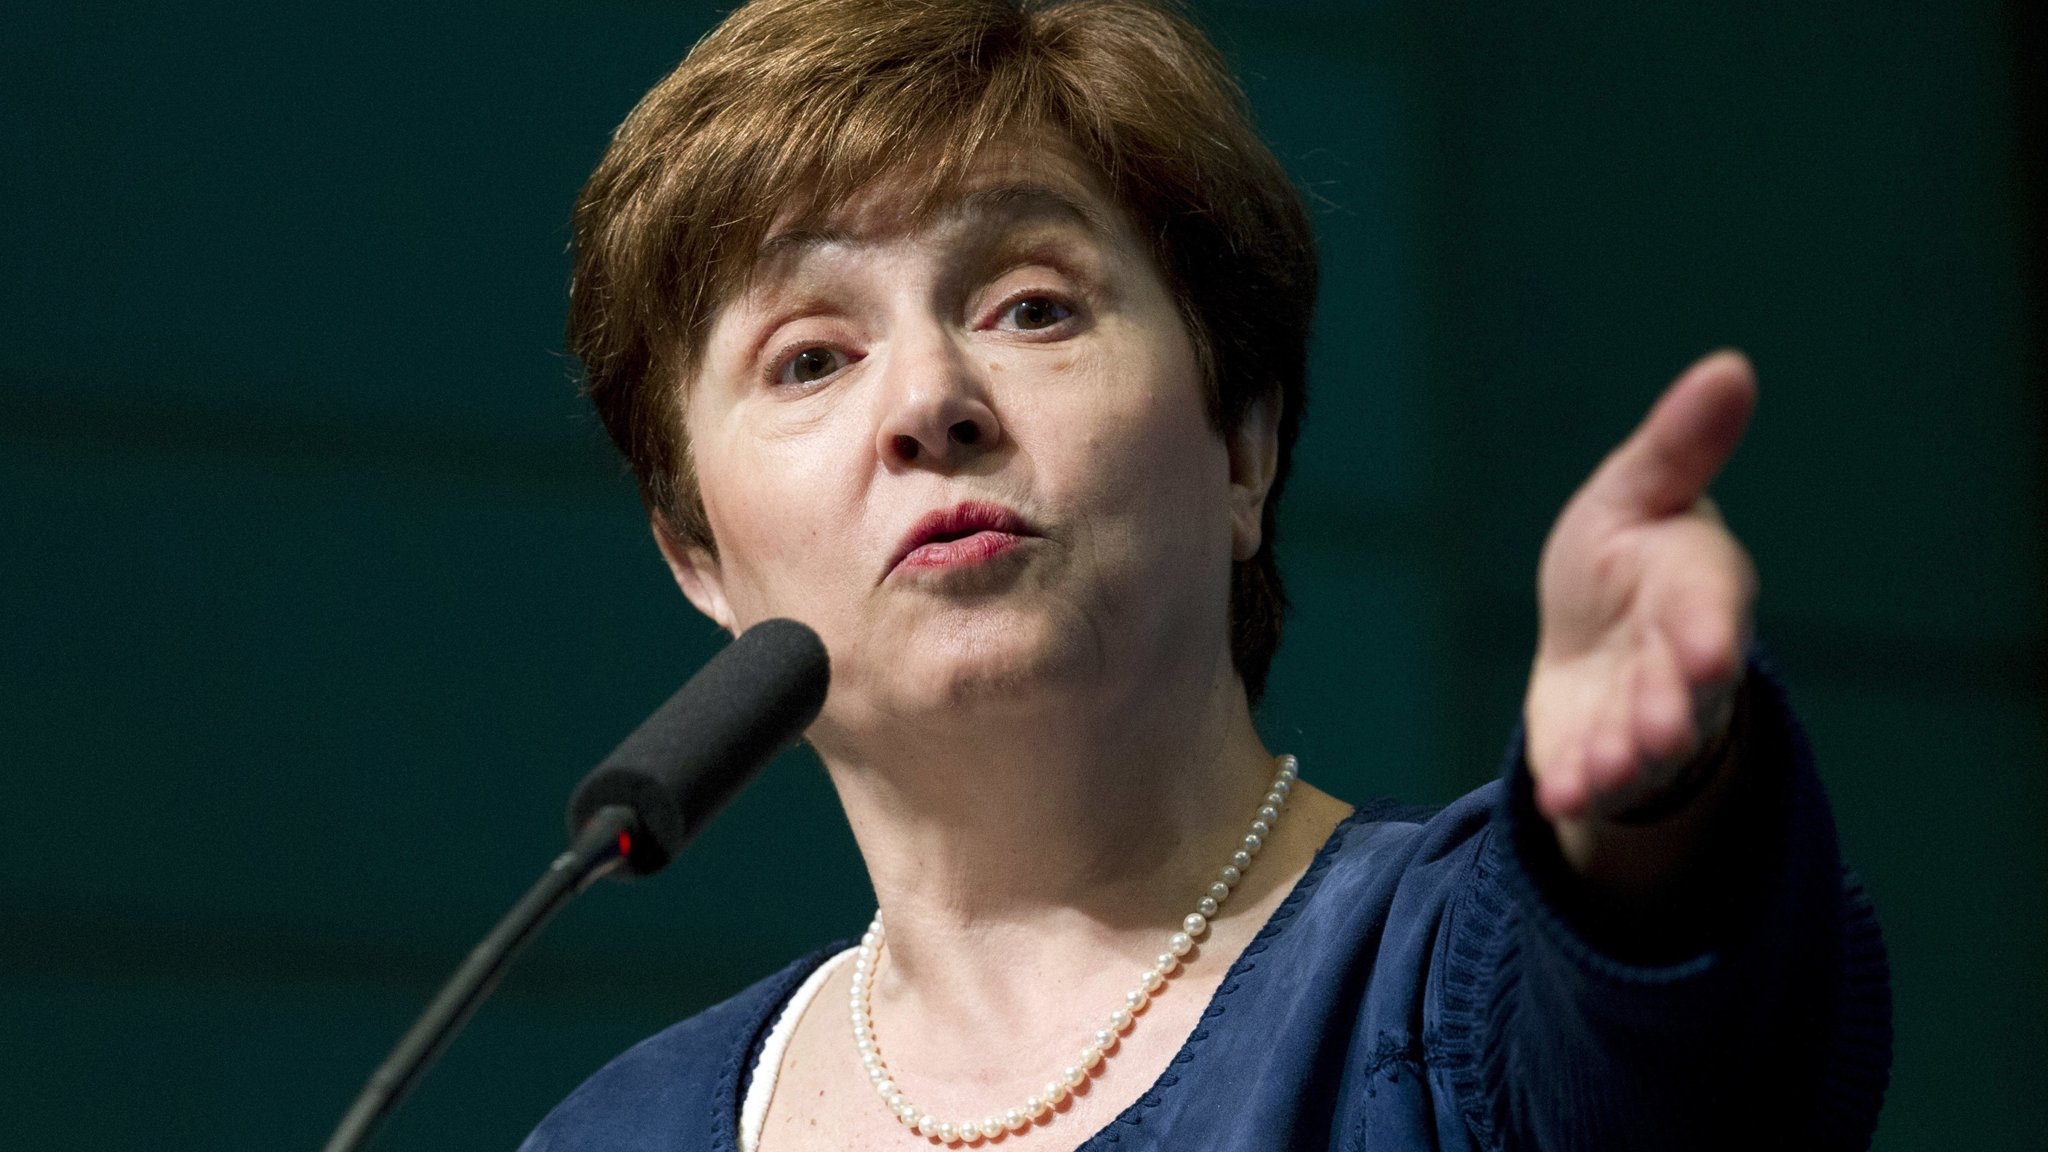 Kristalina Georgieva moves step closer to IMF top job